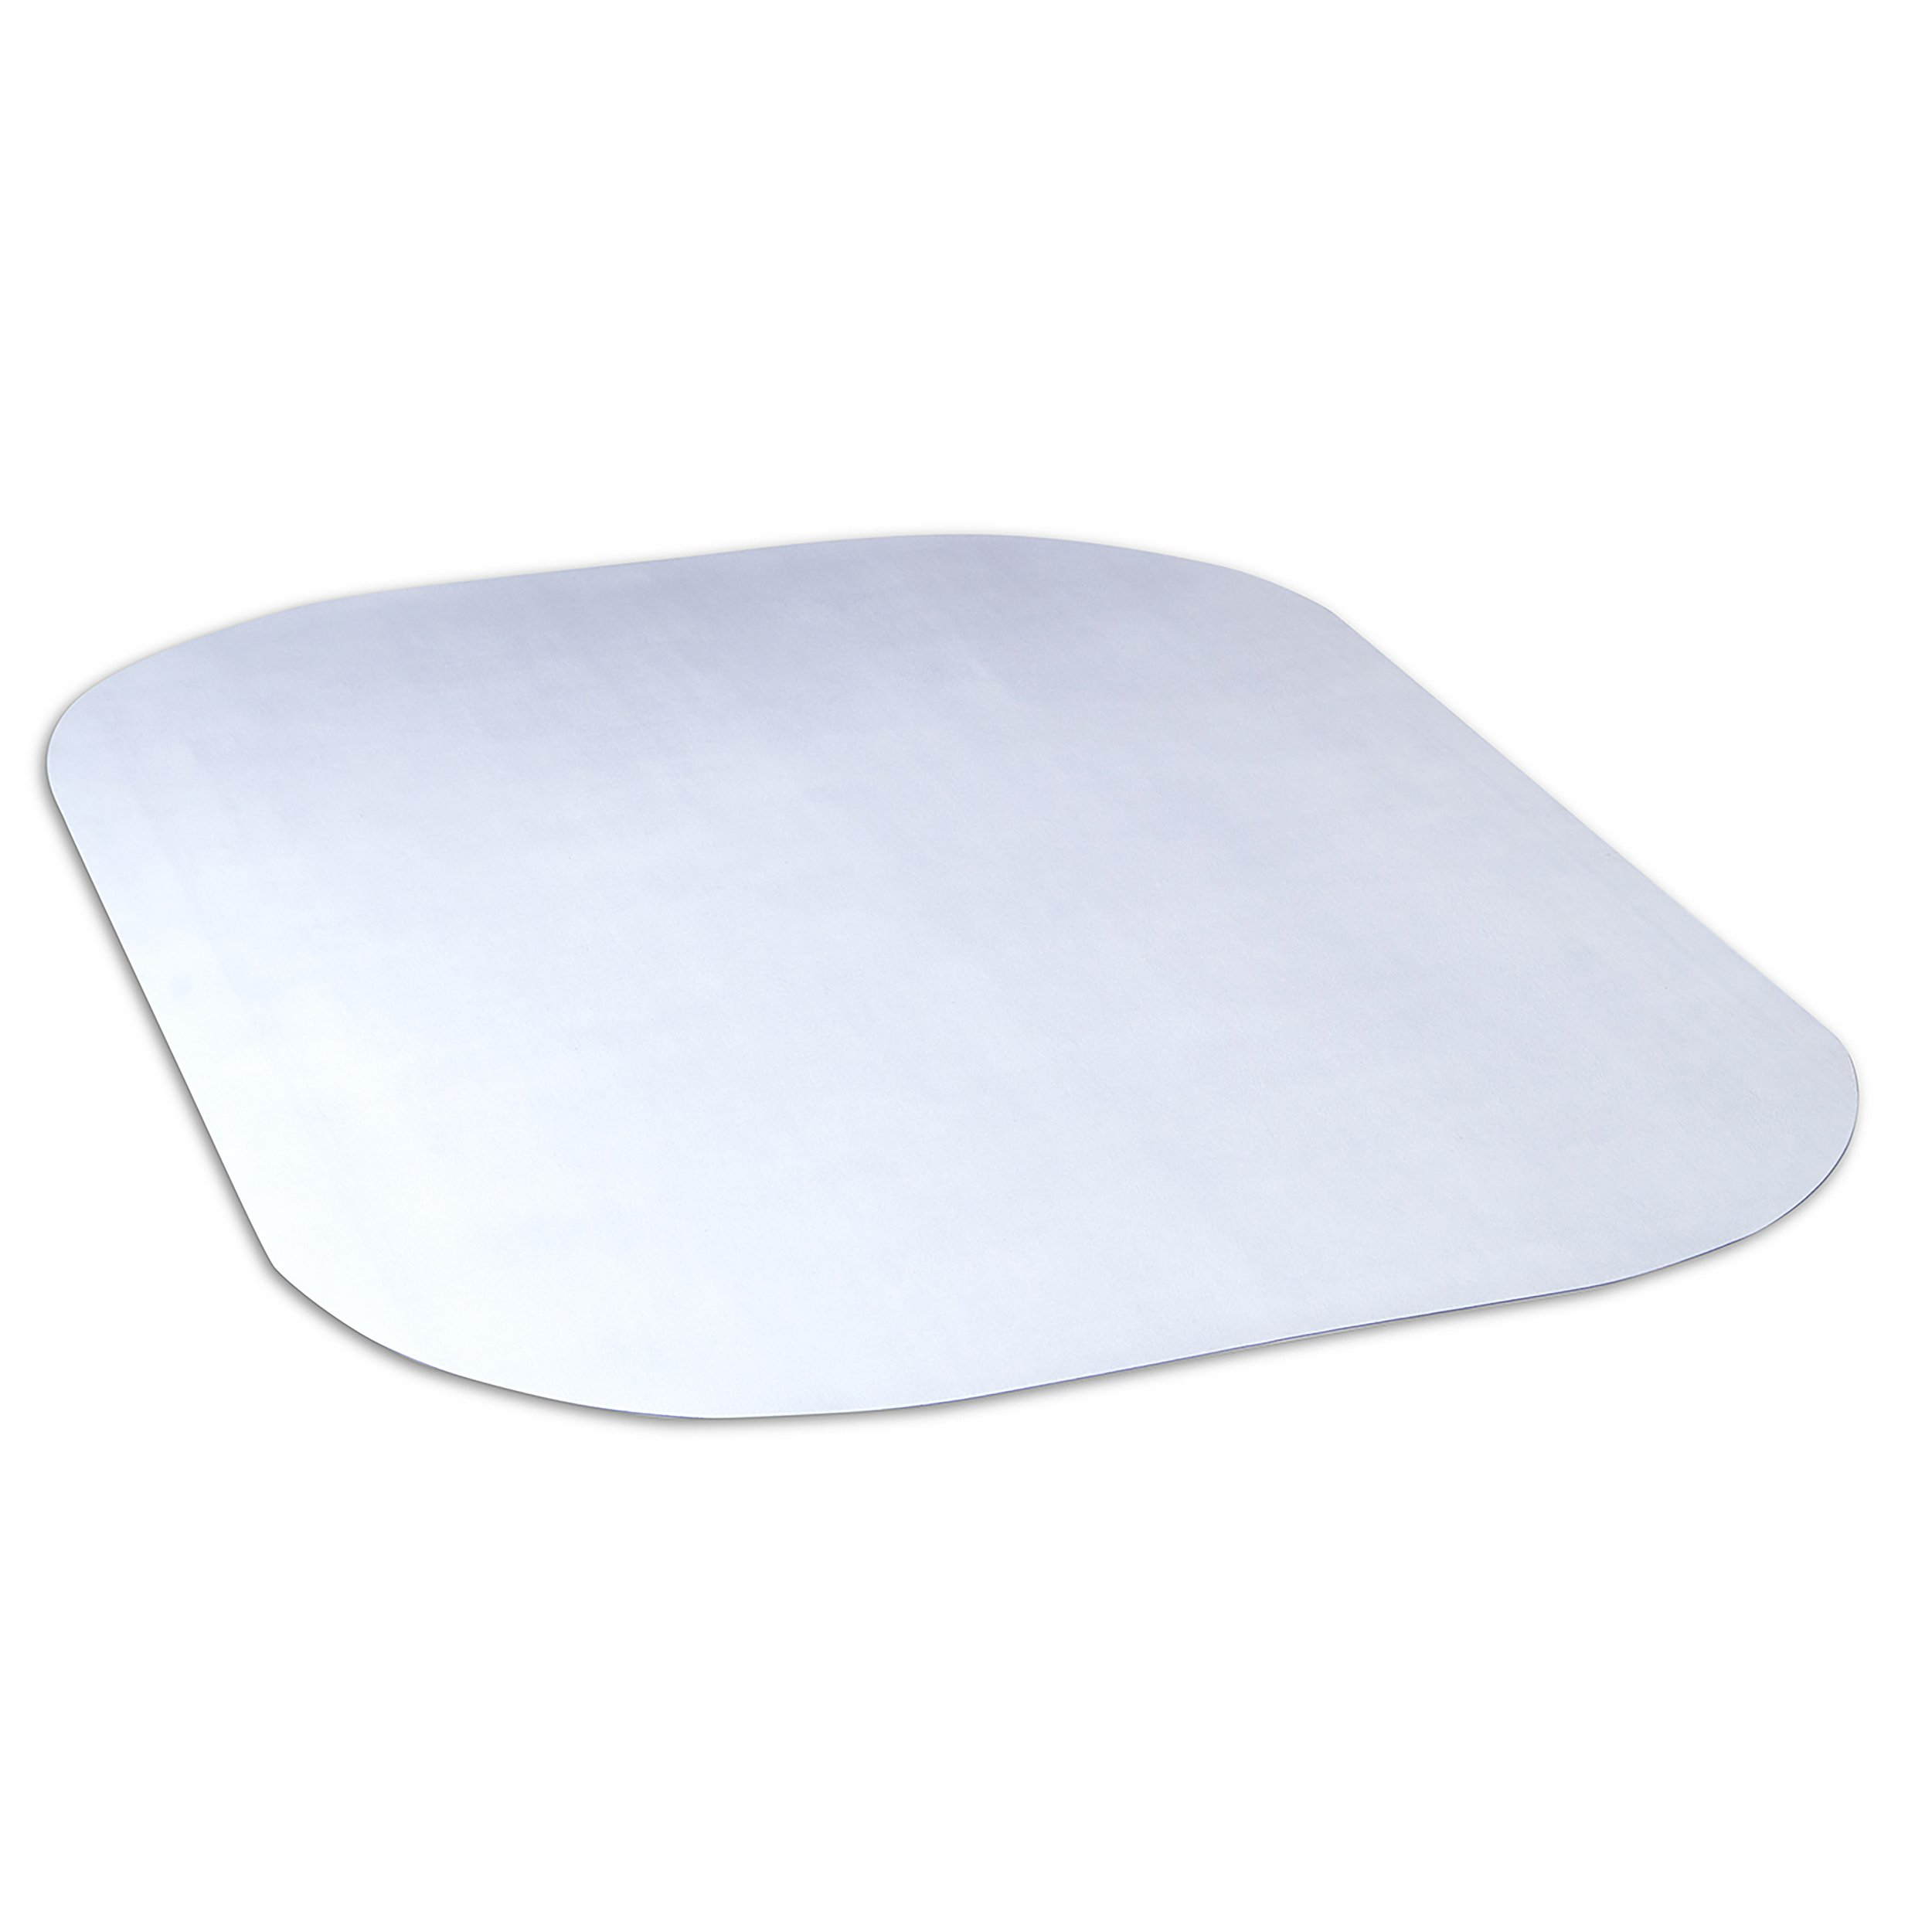 Evolve Modern Shape 45''x 60'' Clear Rectangle Office Chair Mat for Hard Floor from Dimex, Phthalate Free (15E60630)